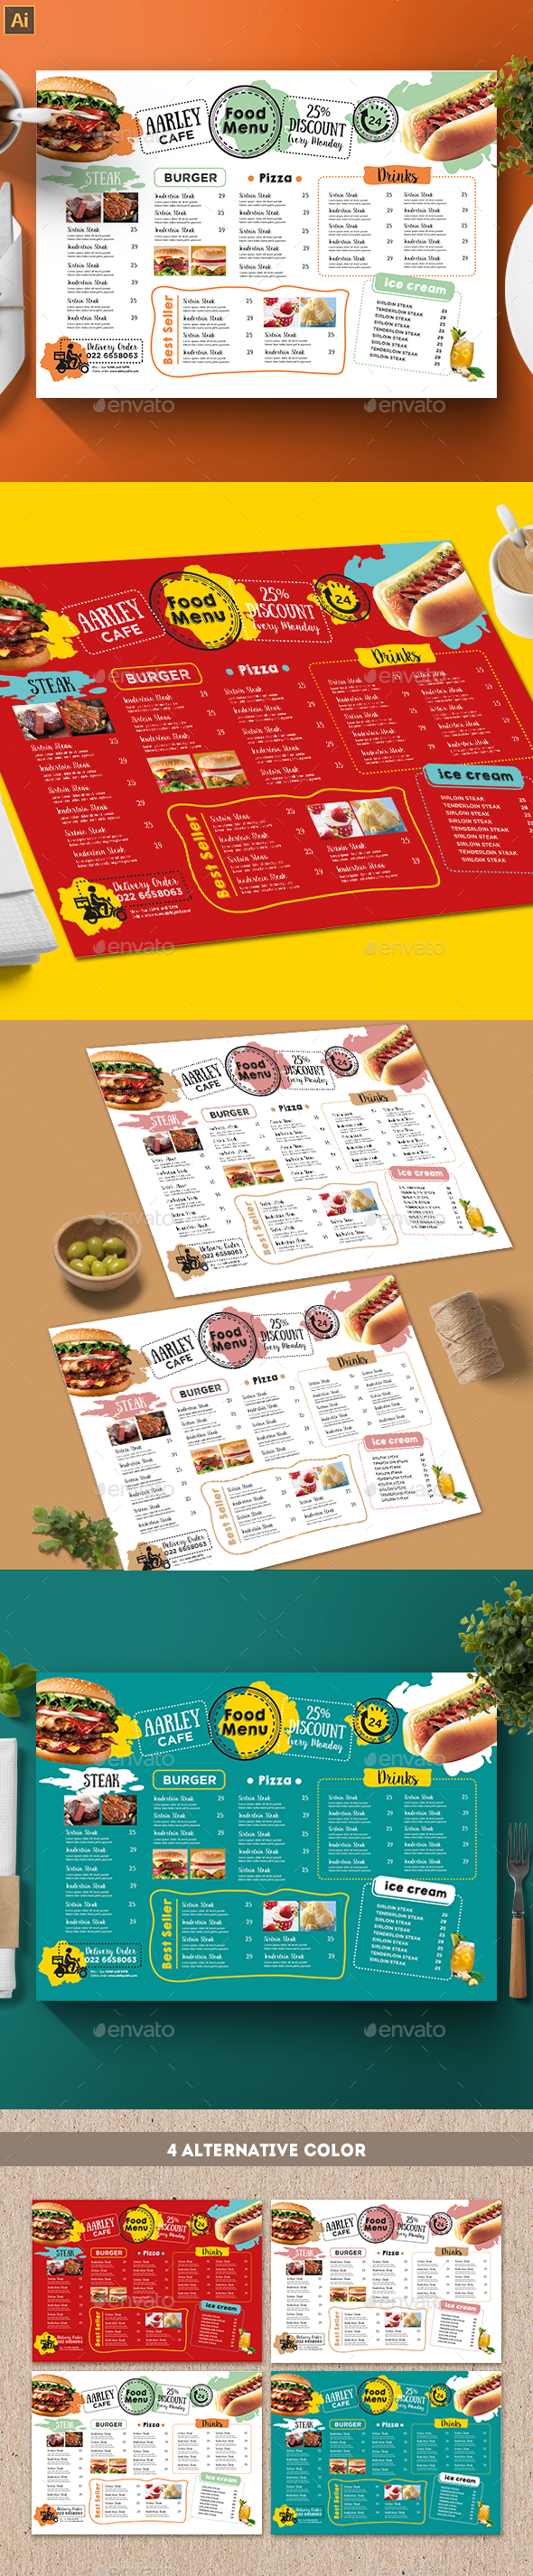 Cafe Menu Template - Food Menus Print Templates